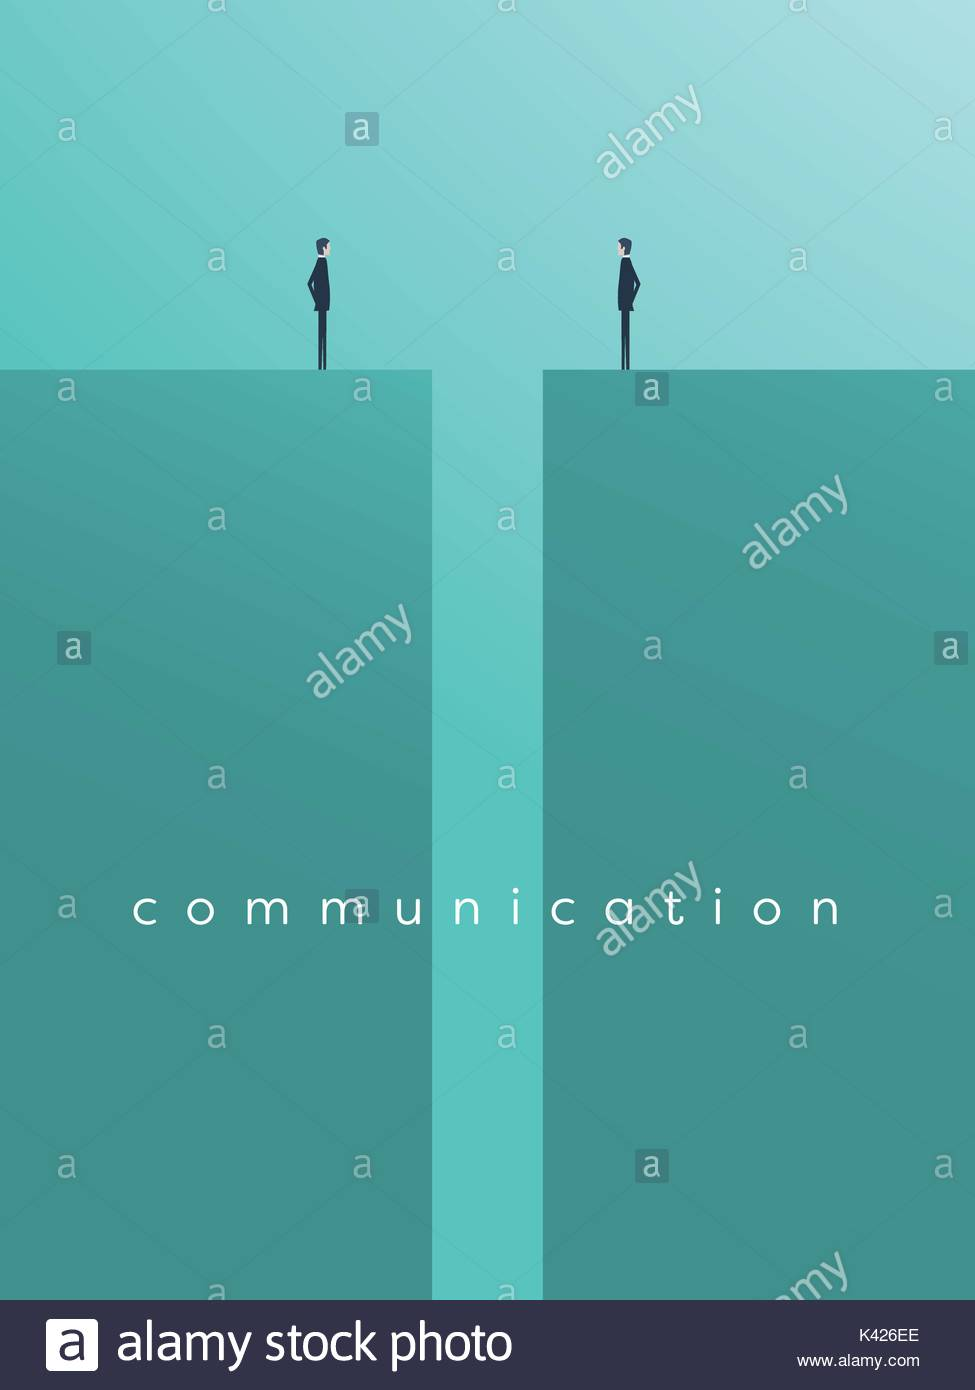 Business comunication or negotiation problems, issues. Two businessmen icons with gap between them. - Stock Vector